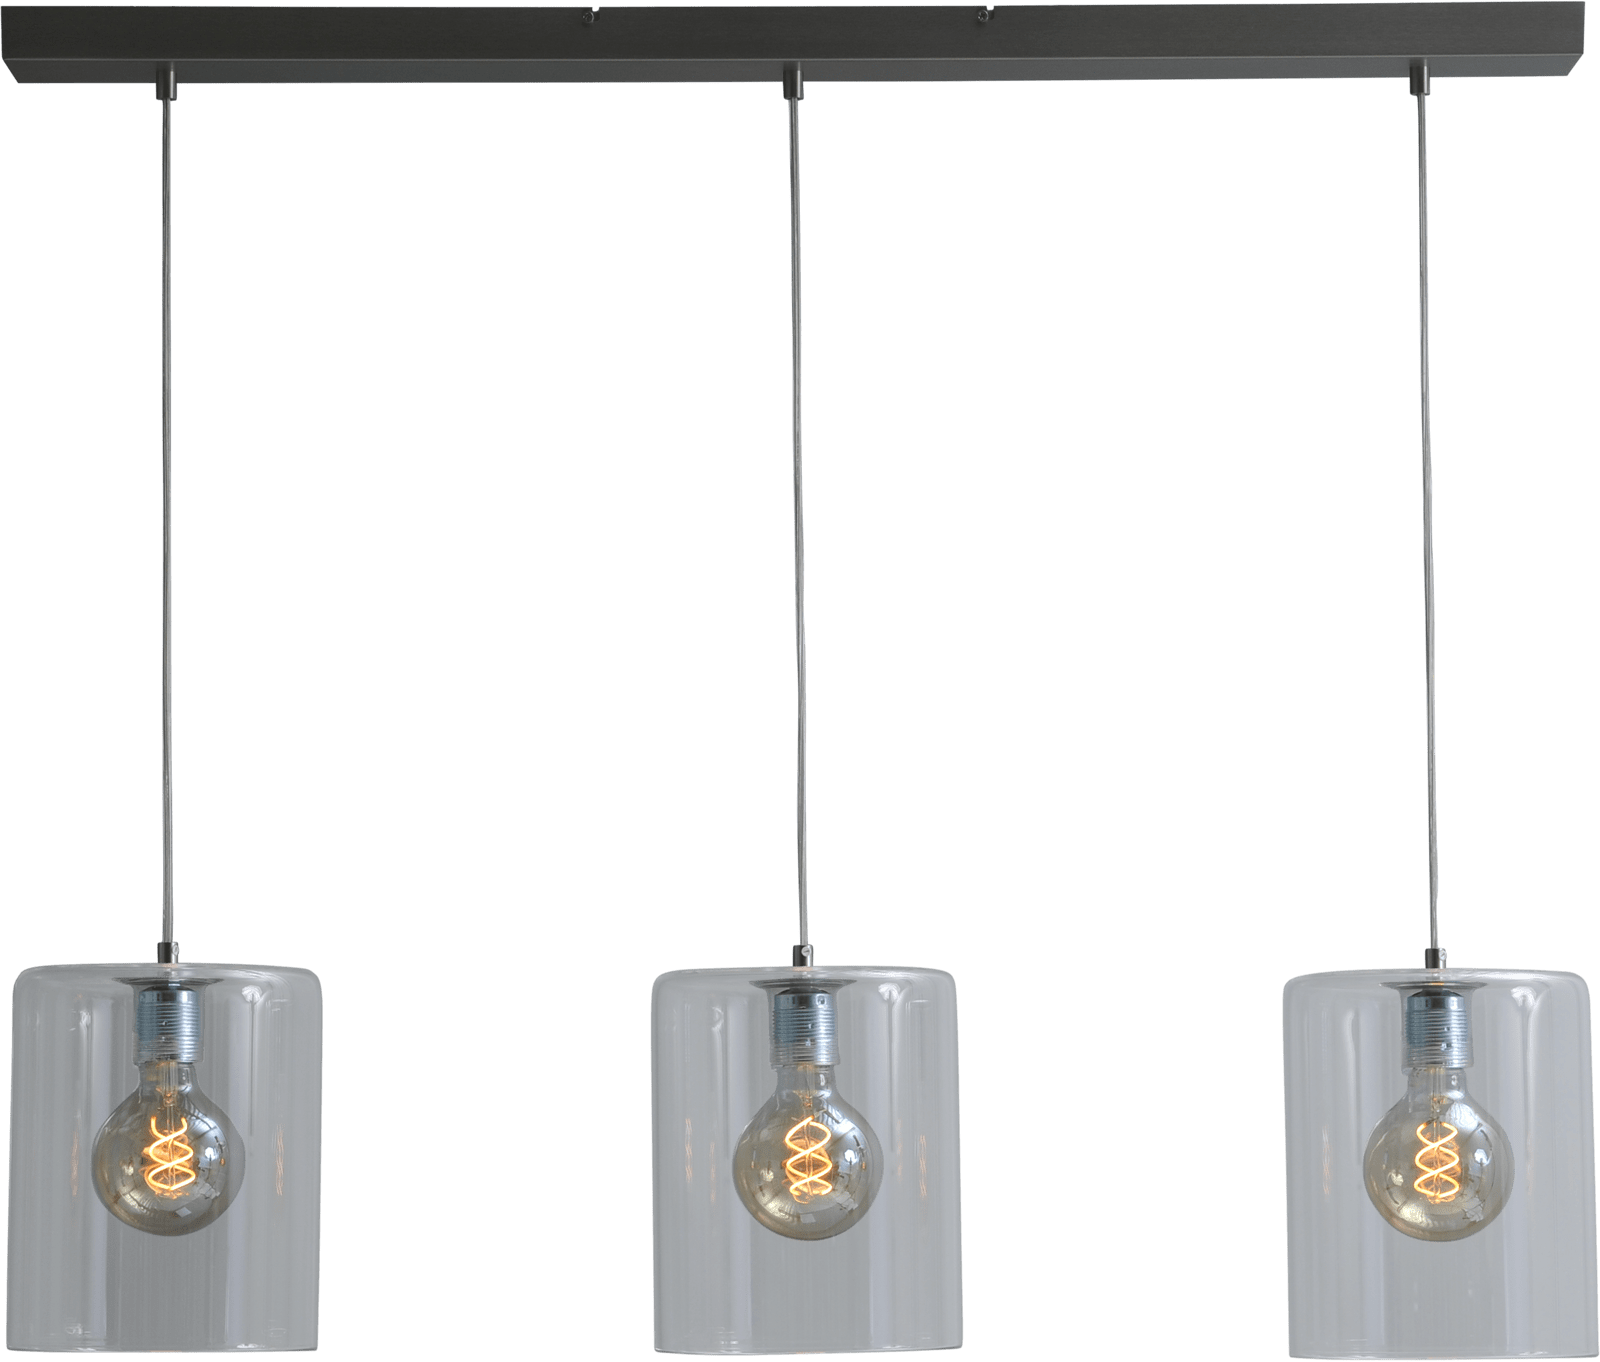 Vesto HL VESTO NICKEL 3LIGHT BEAM 100X8CM E27